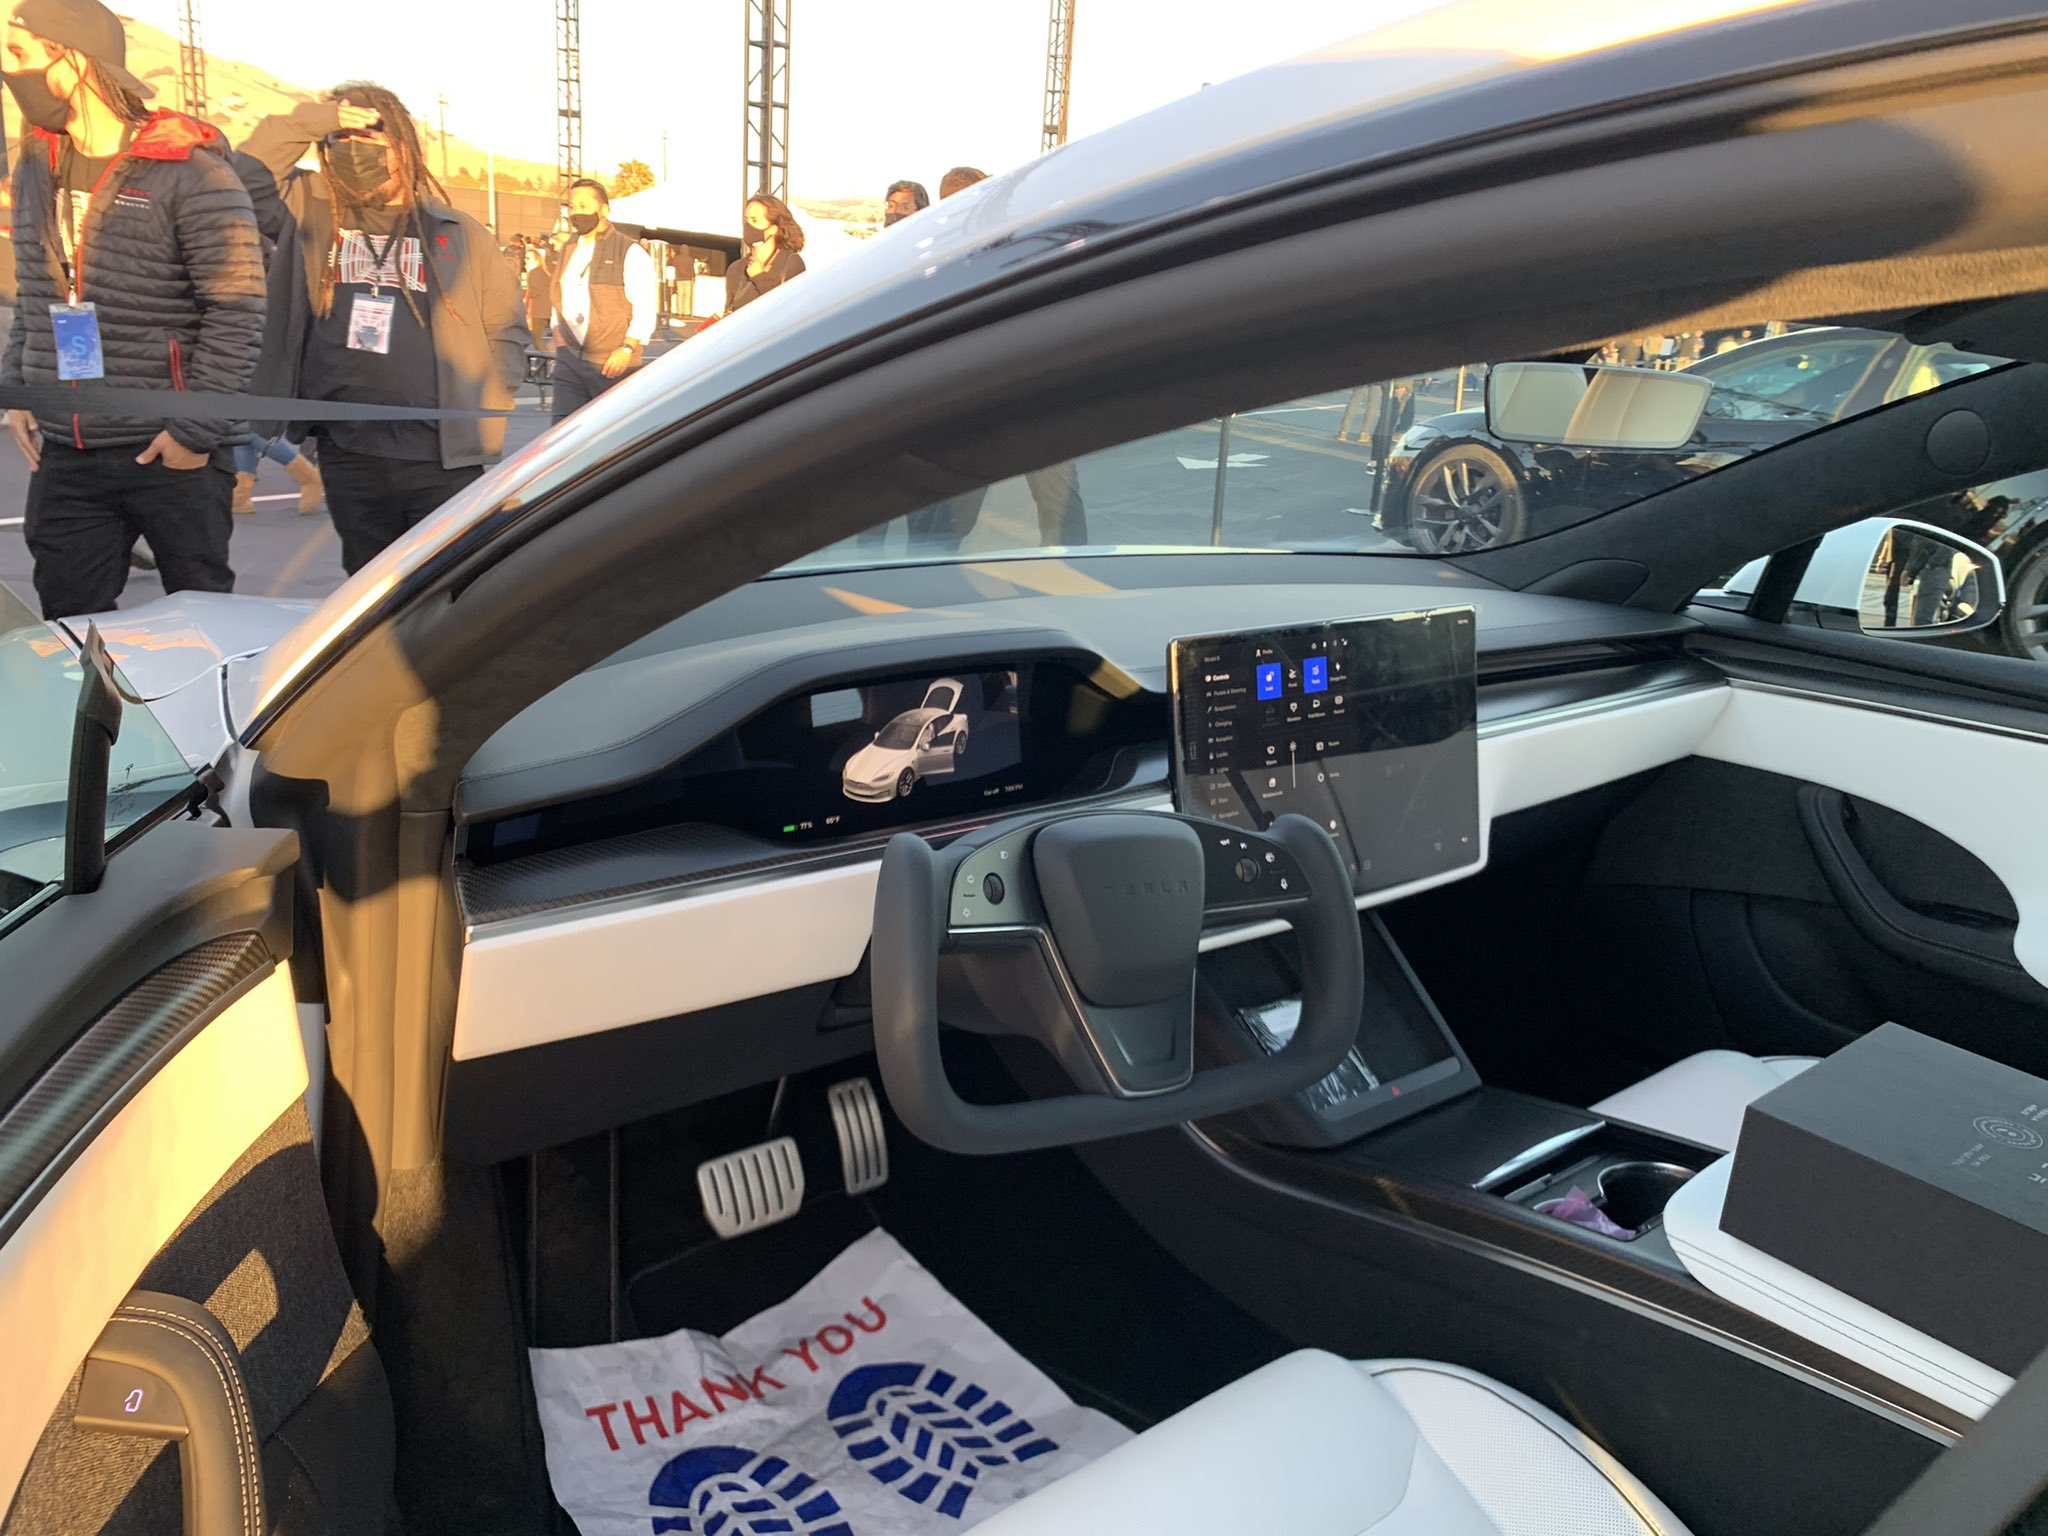 Tesla's Model S Plaid Delivery Event on June 10th allowed fans and owners to check out the automaker's new, refreshed version of the flagship sedan. (Credit: @kimpaquette/Twitter)